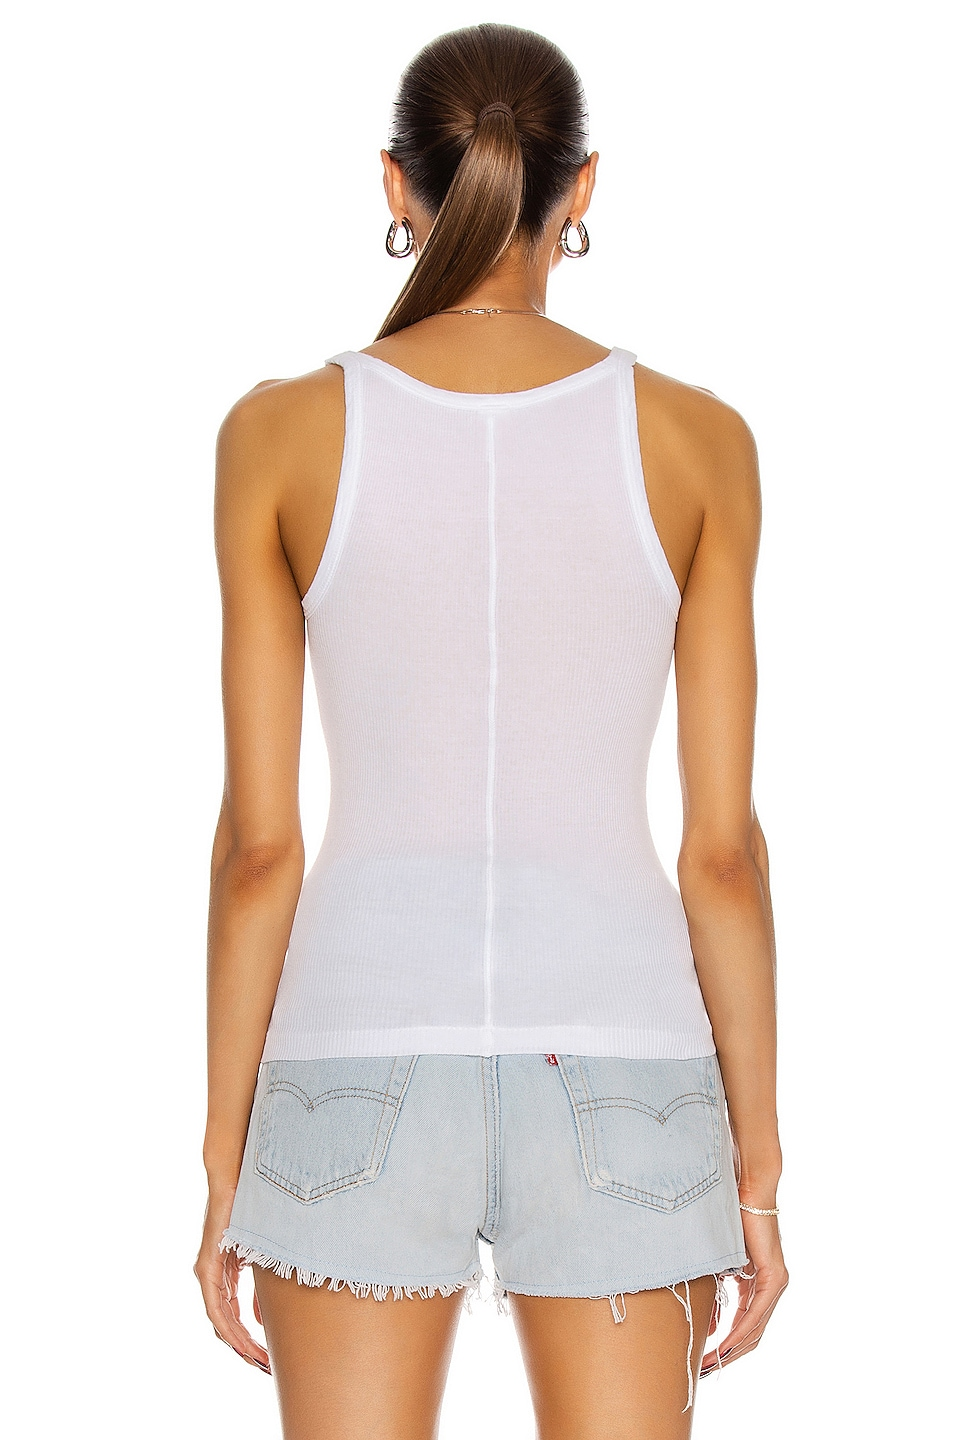 Free Shipping In China Original Sale Online Ribbed Tank Top in White Re/Done How Much Sale Online Outlet Popular BCilro